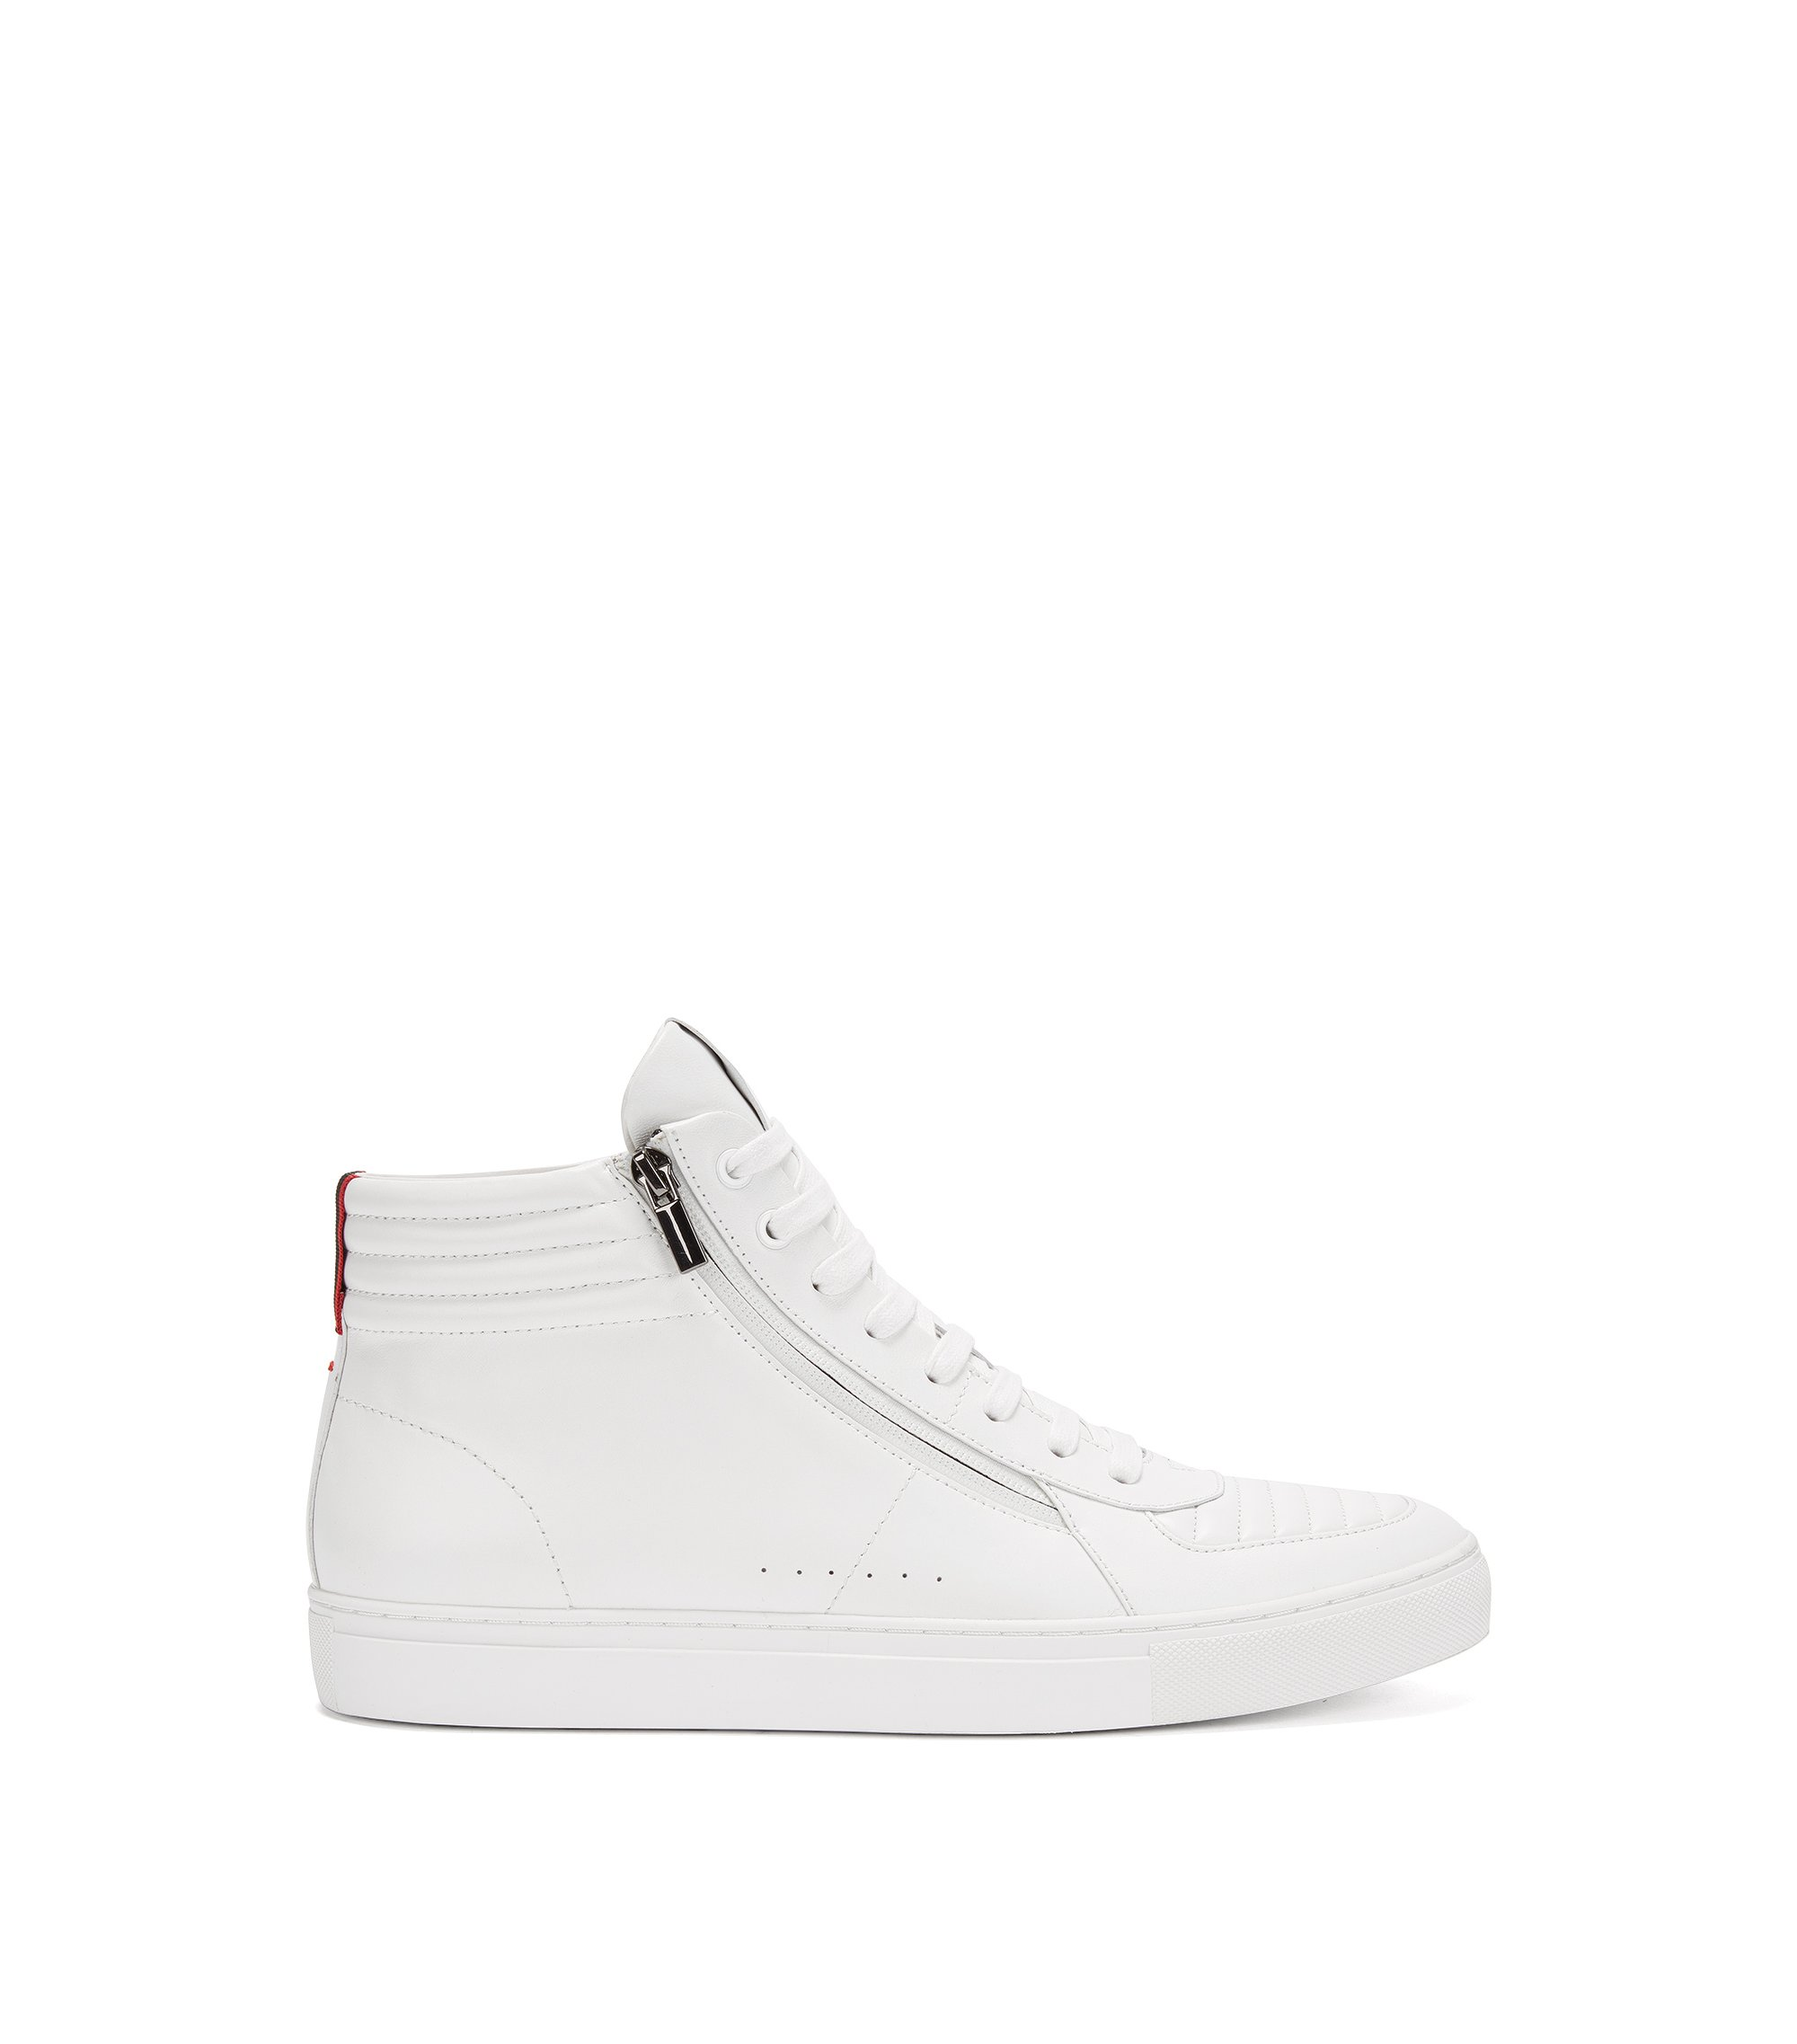 Leather High-Top Sneaker | Futurism Hito Itmtzp, White